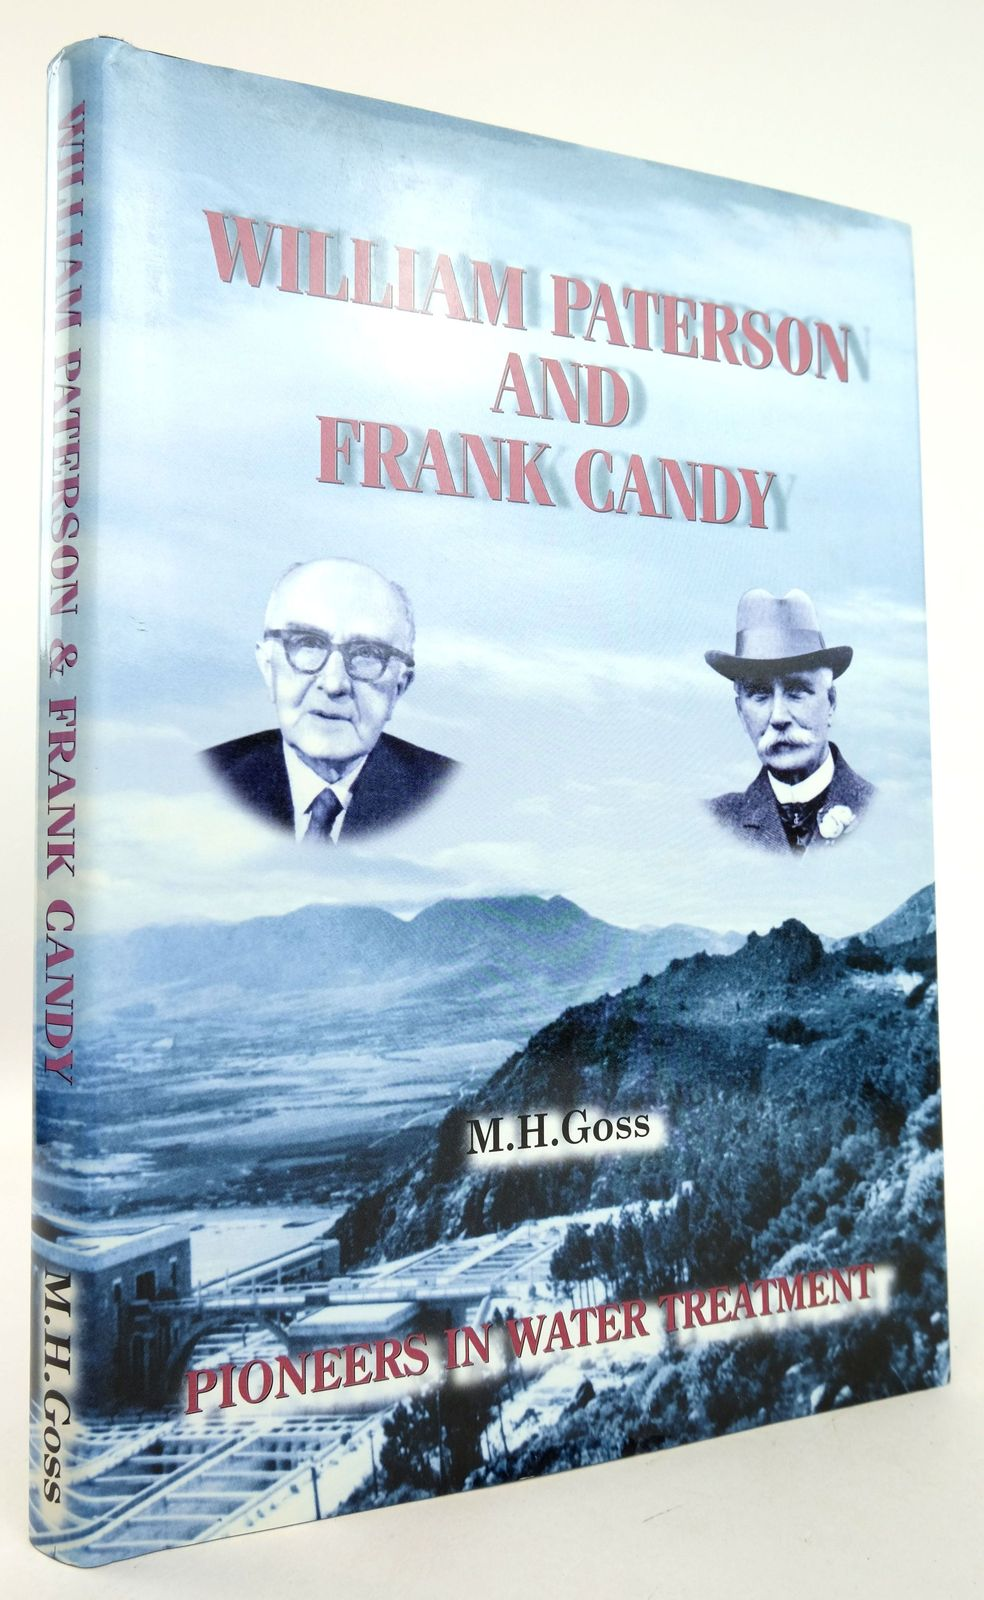 Photo of WILLIAM PATERSON AND FRANK CANDY- Stock Number: 1819362